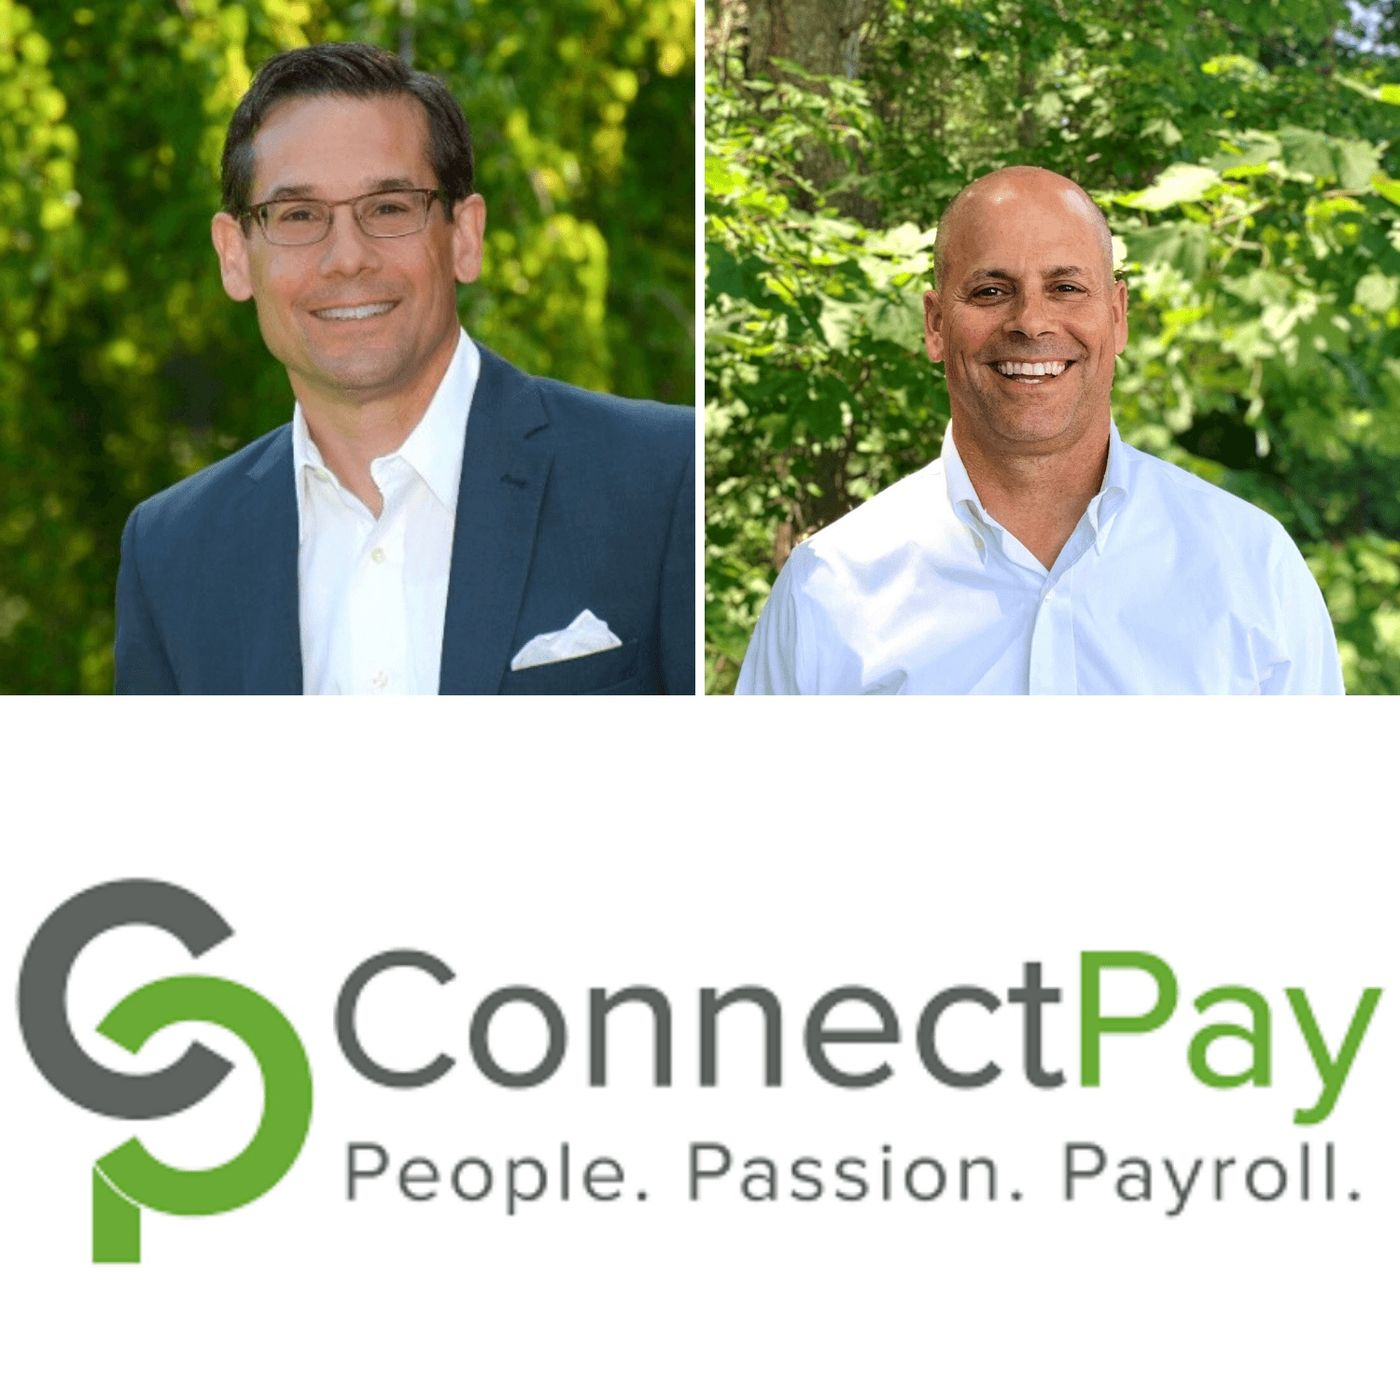 Michael Young and Drew Schildwachter, ConnectPay